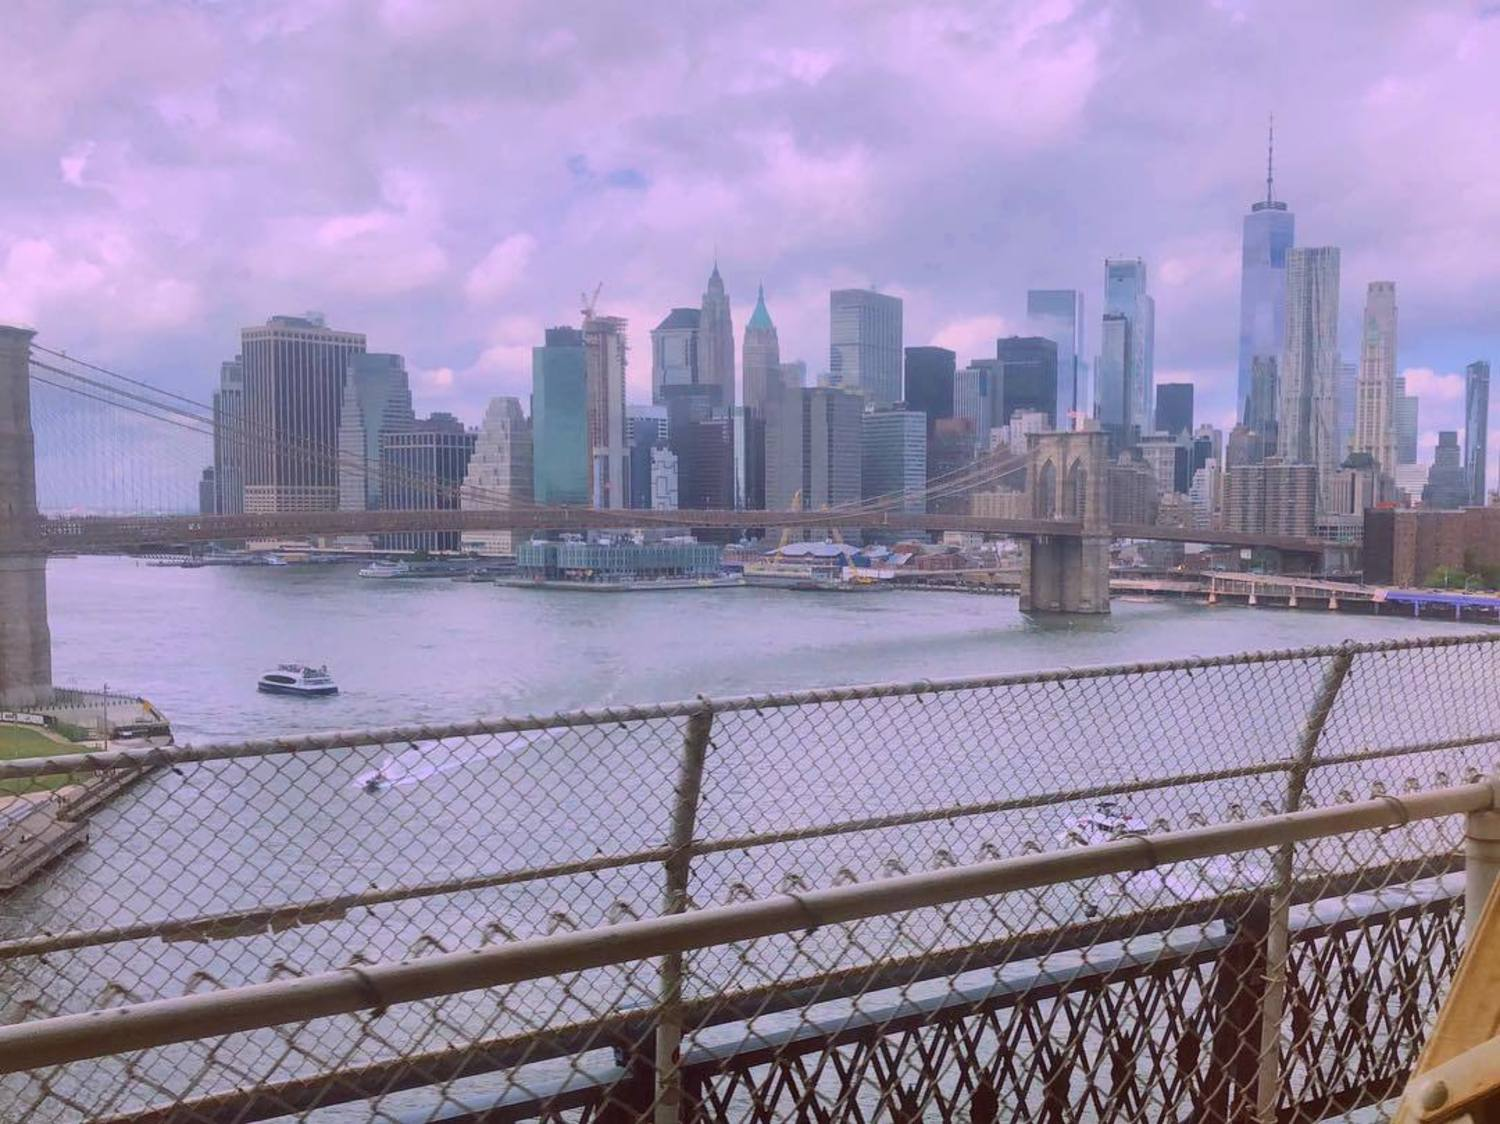 View of Lower Manhattan from Q Train over Manhattan Bridge